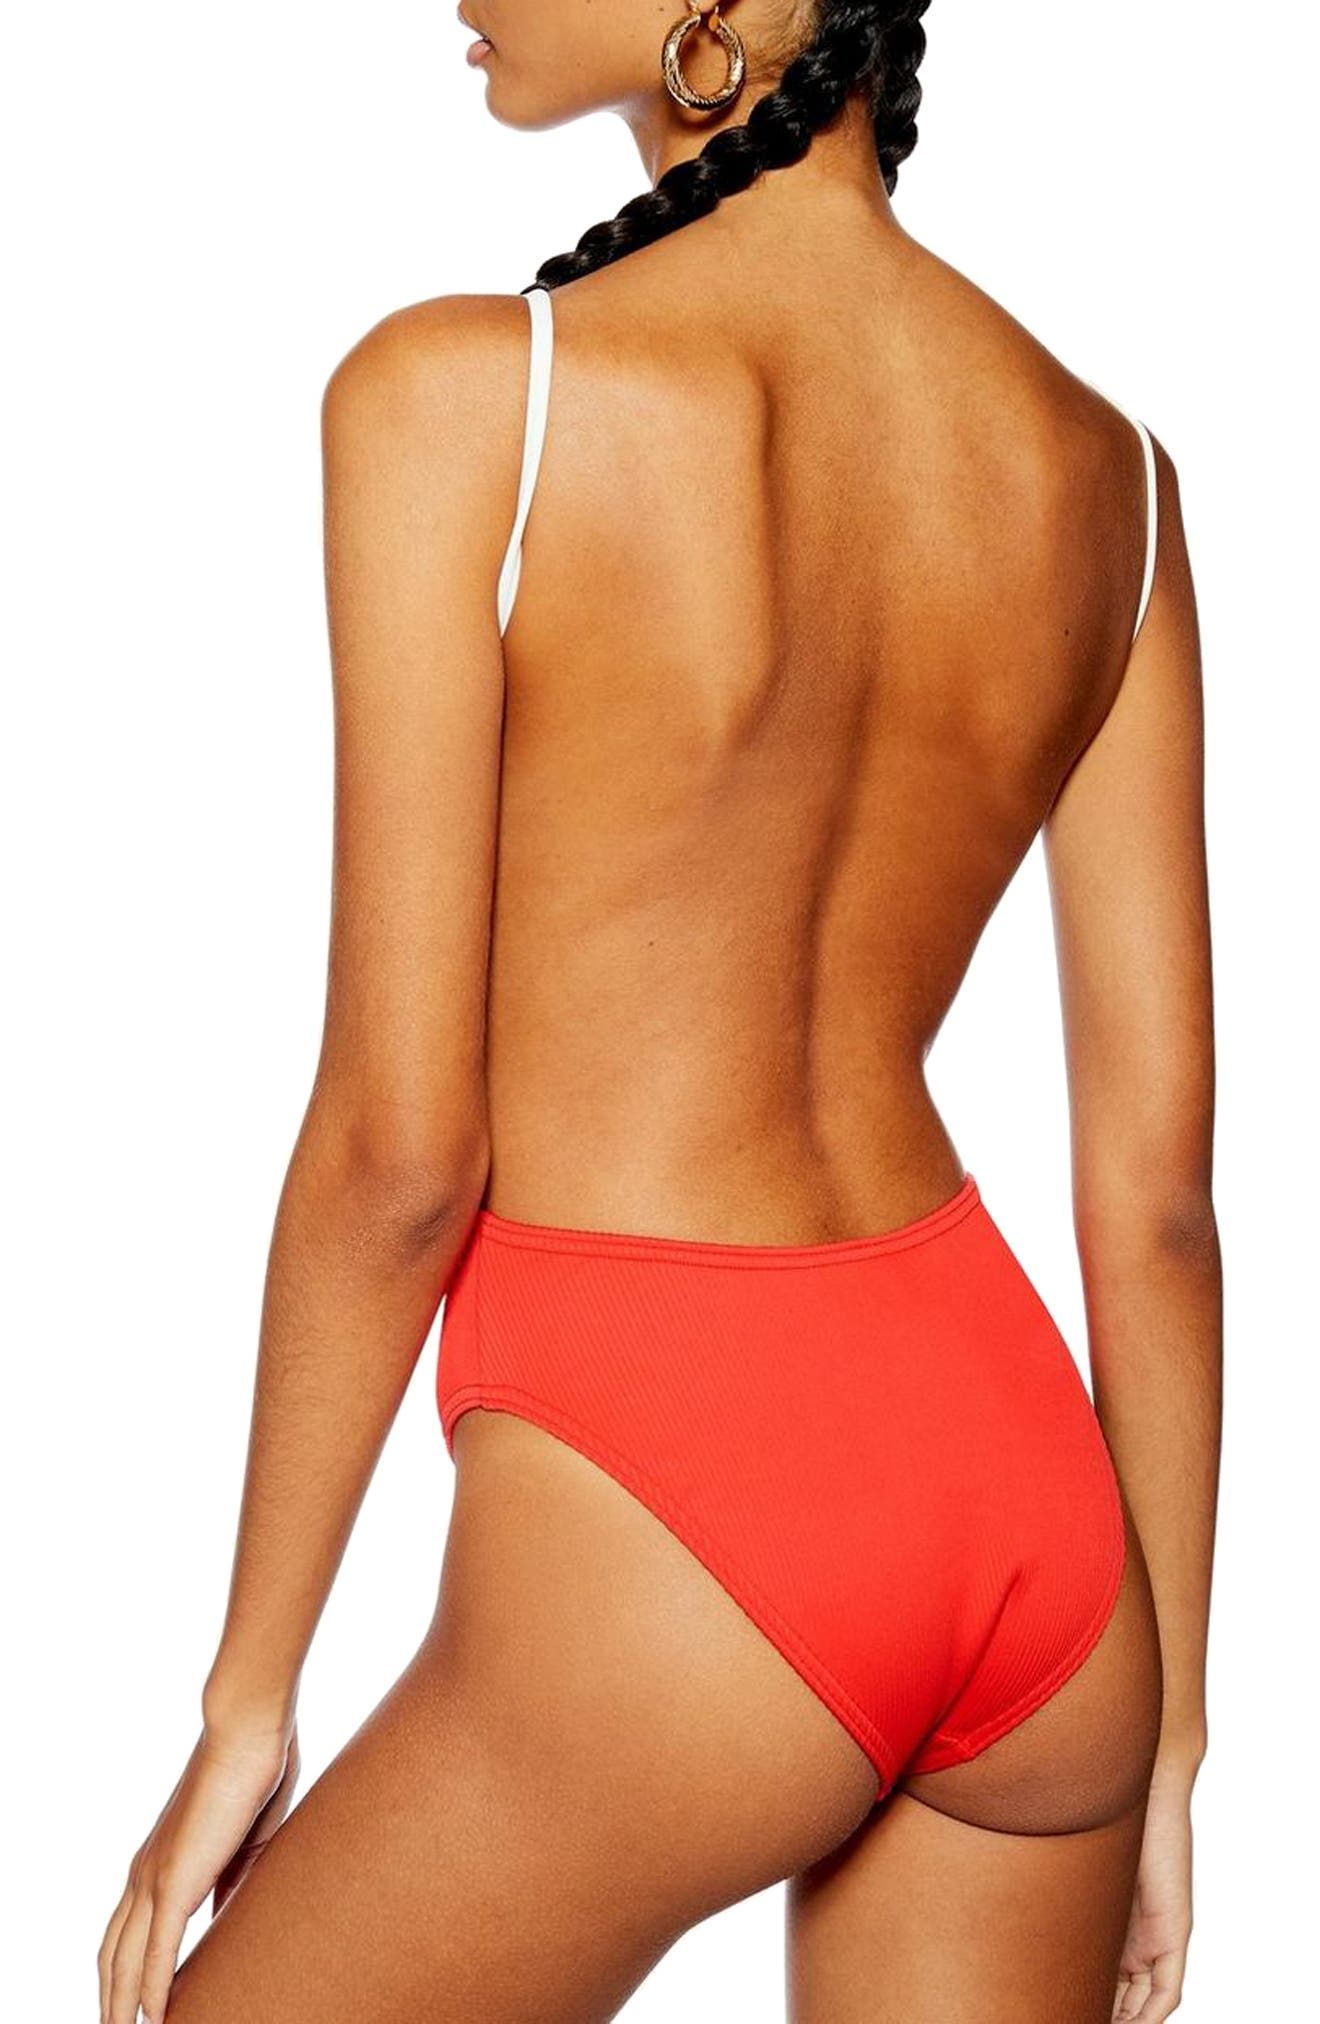 Pamela Button Ribbed One-Piece Swimsuit,                             Alternate thumbnail 2, color,                             RED